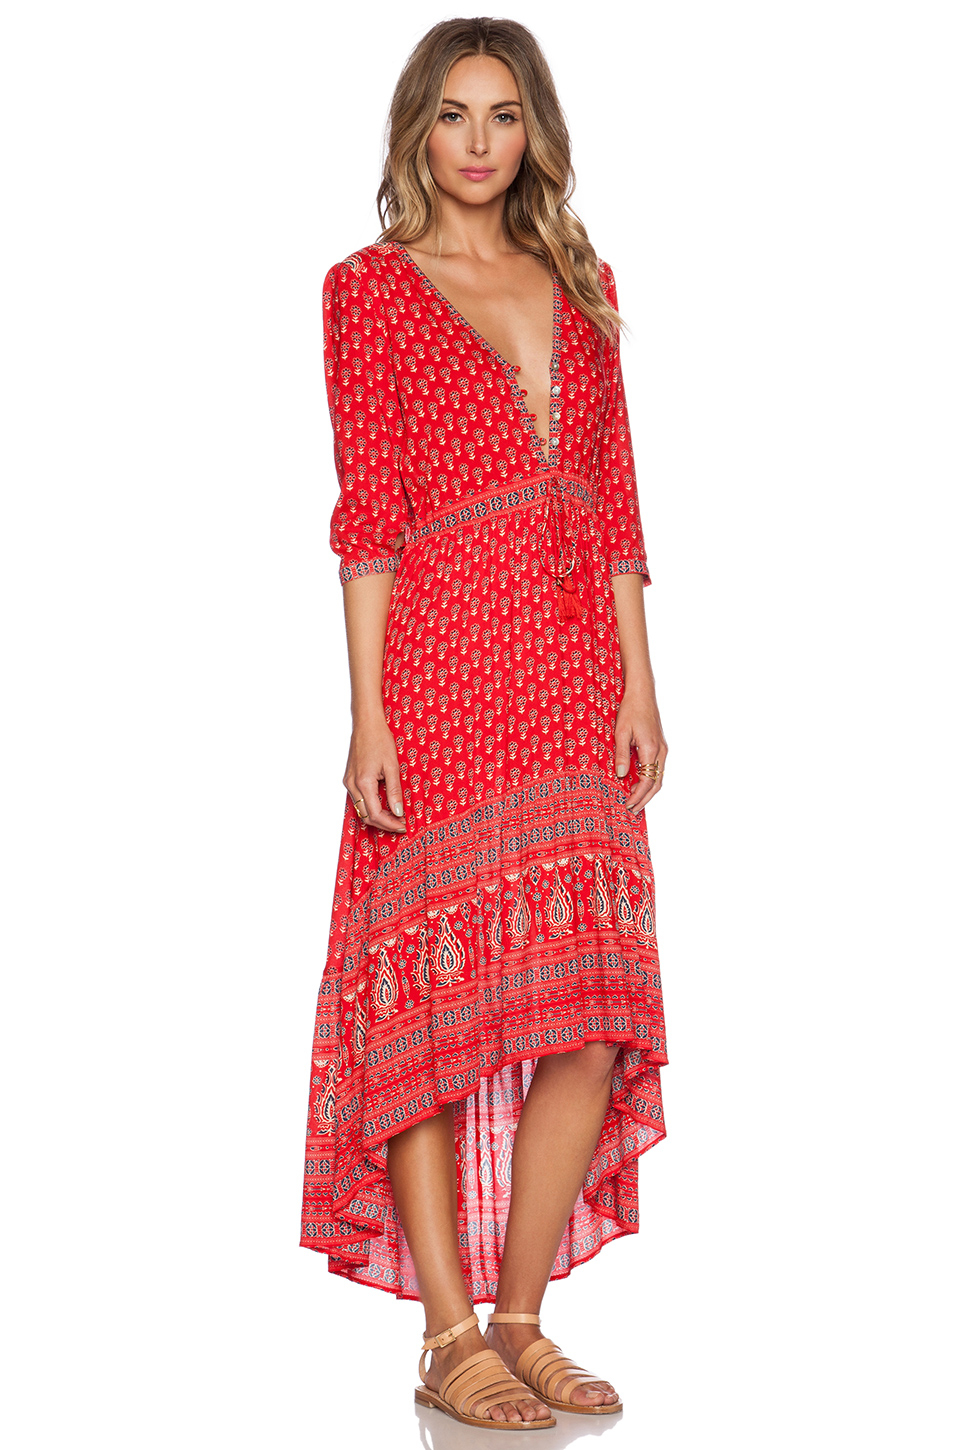 Spell & the gypsy collective Gypsiana Maxi Dress in Red | Lyst